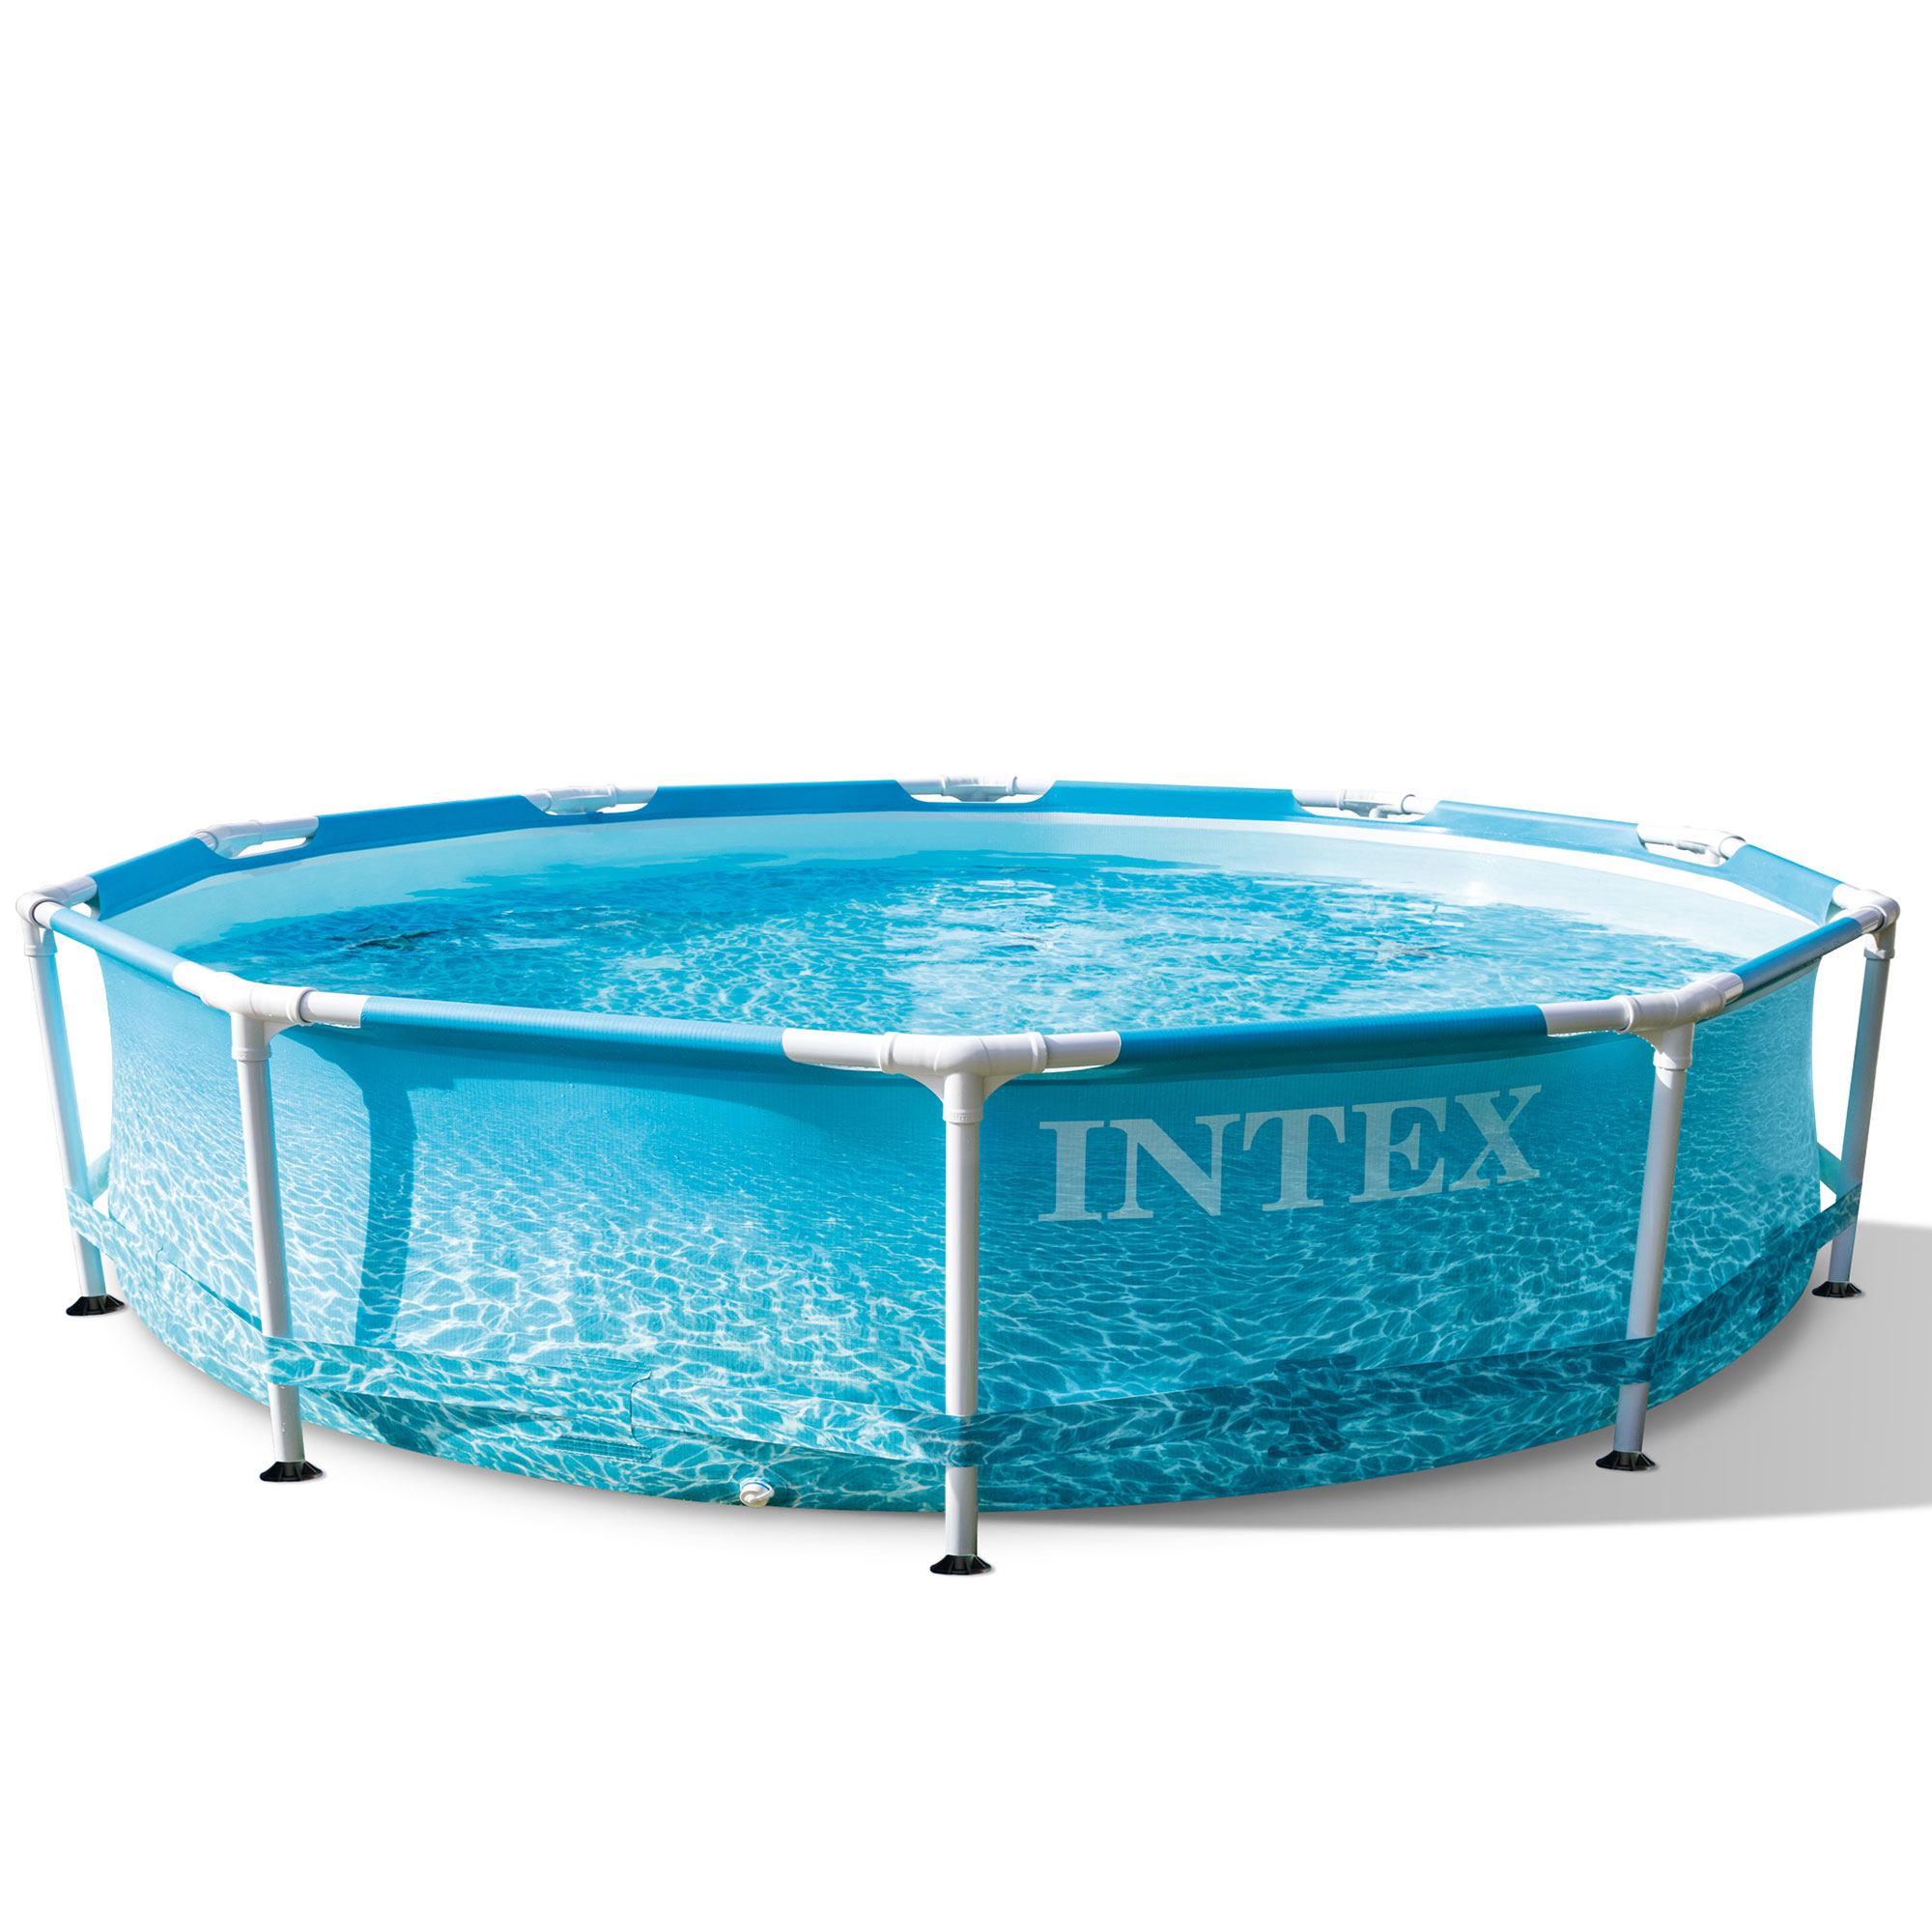 Bazén Intex Metal Frame Beachside 305 x 076 cm 28206 NP